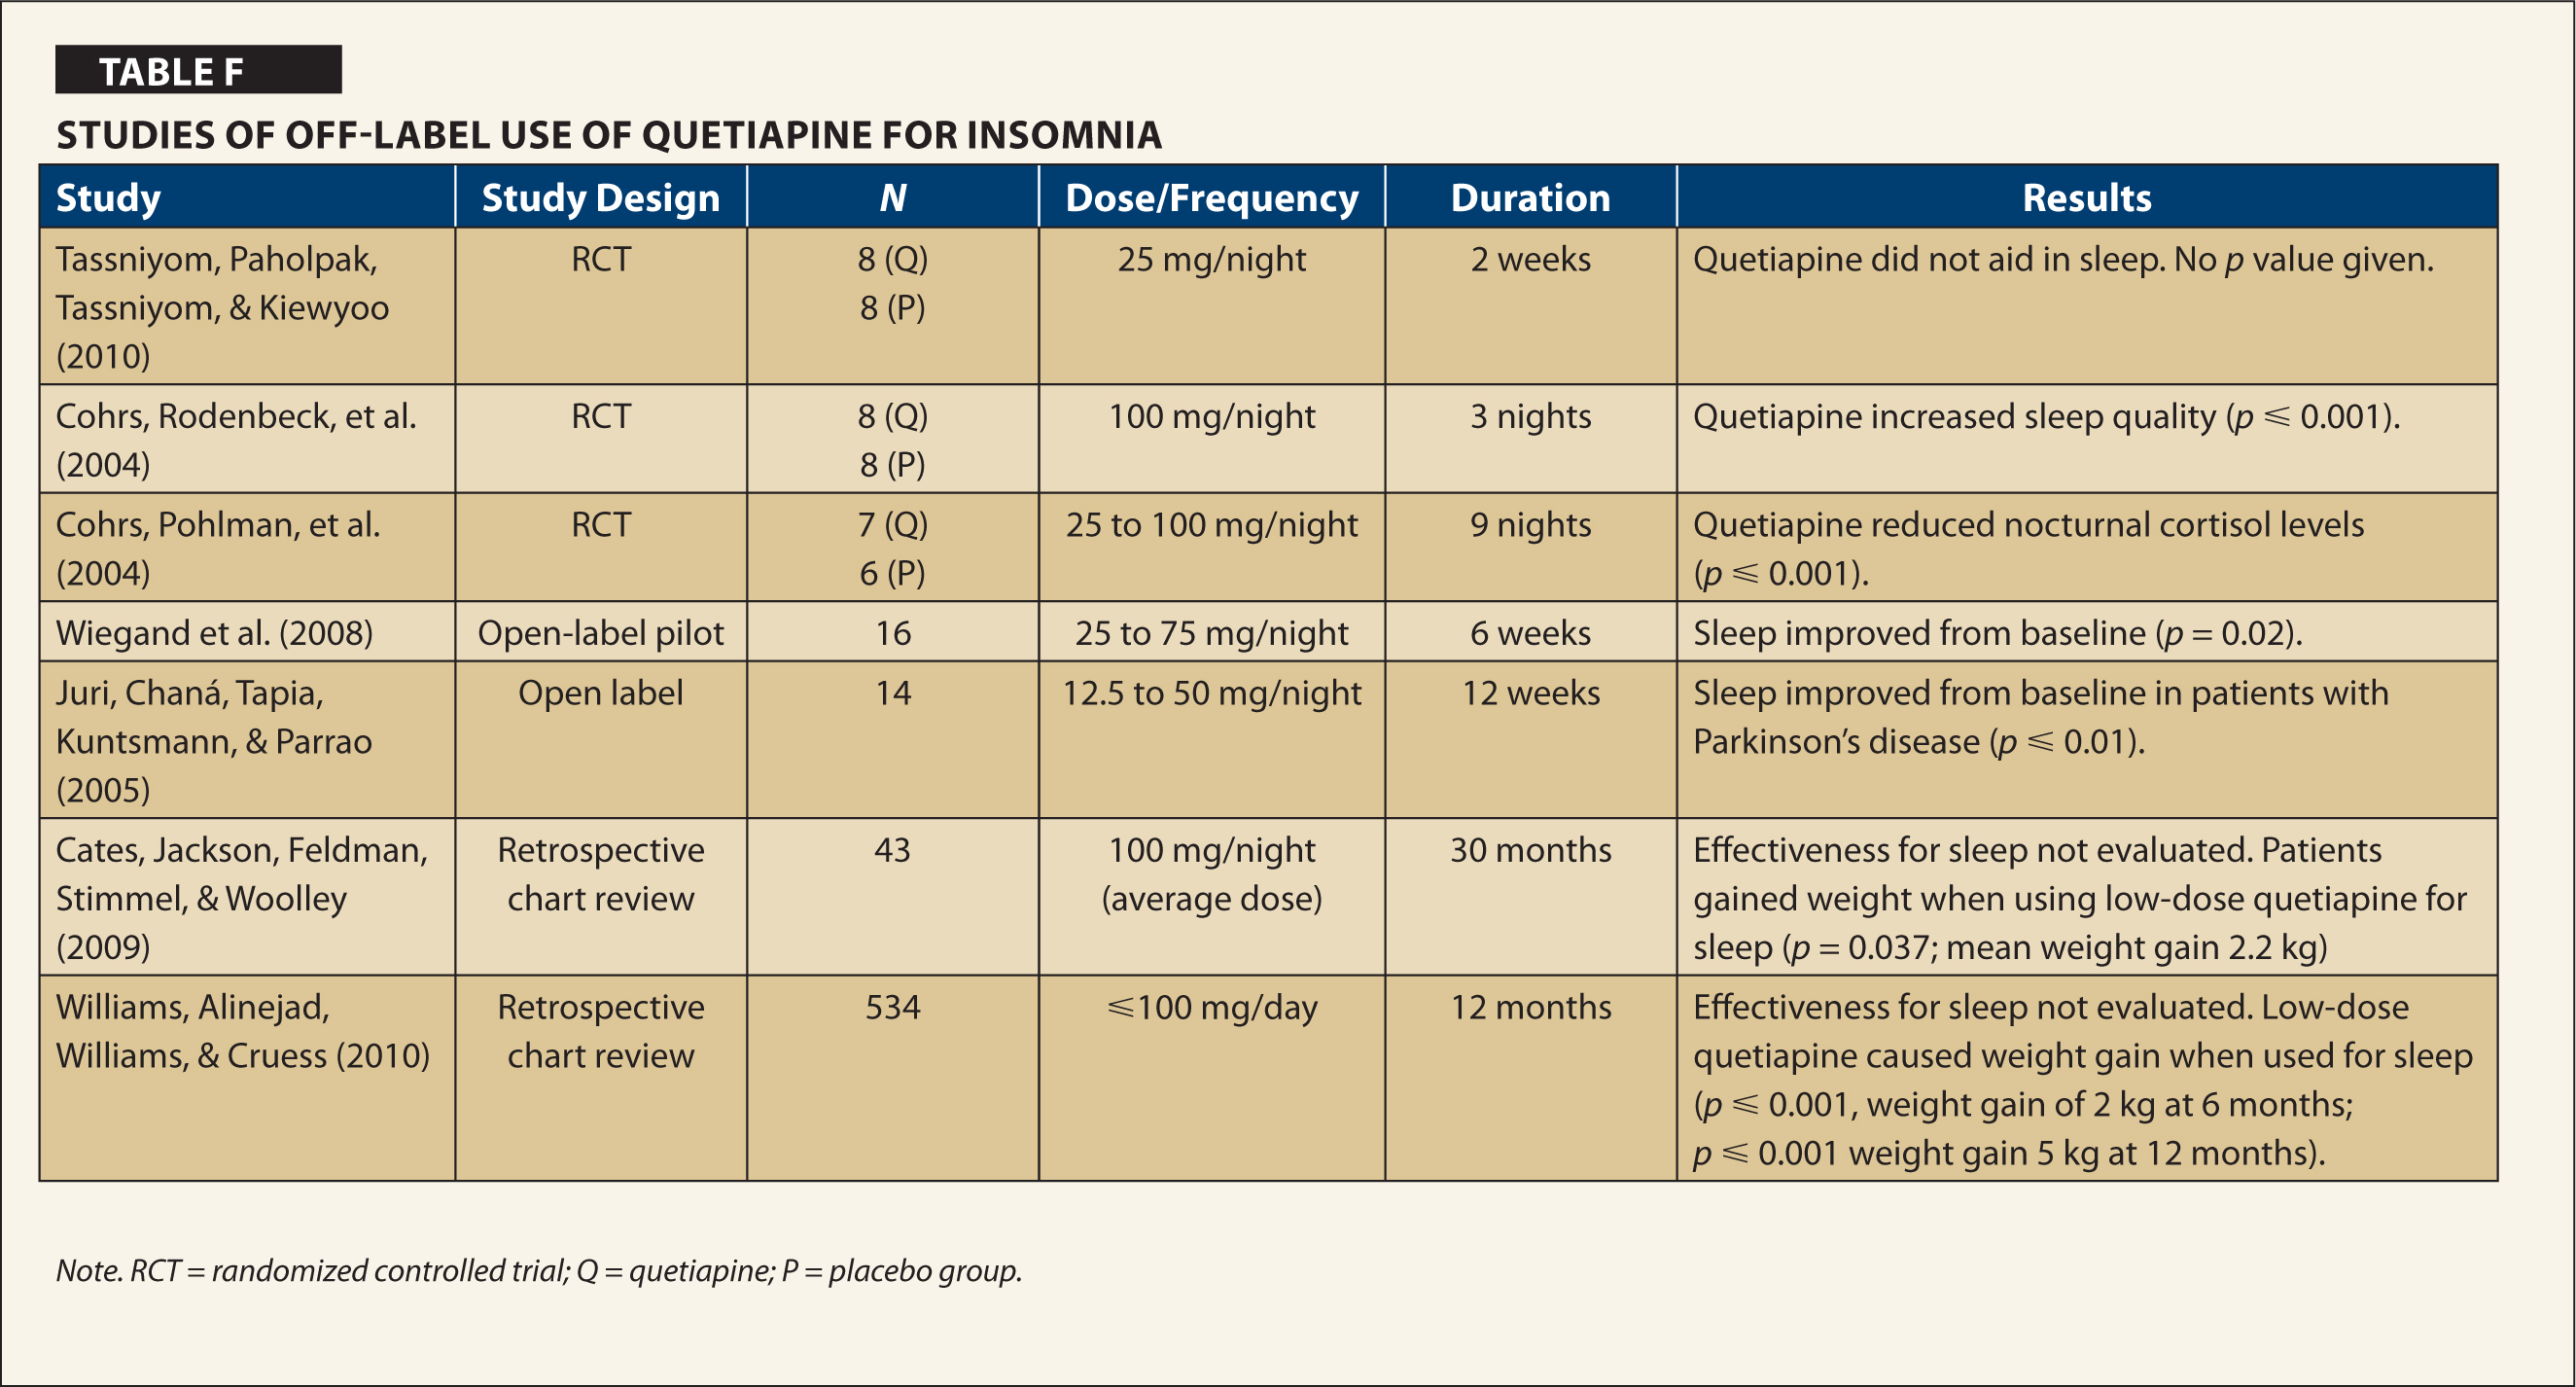 Studies of Off-Label Use of Quetiapine for Insomnia